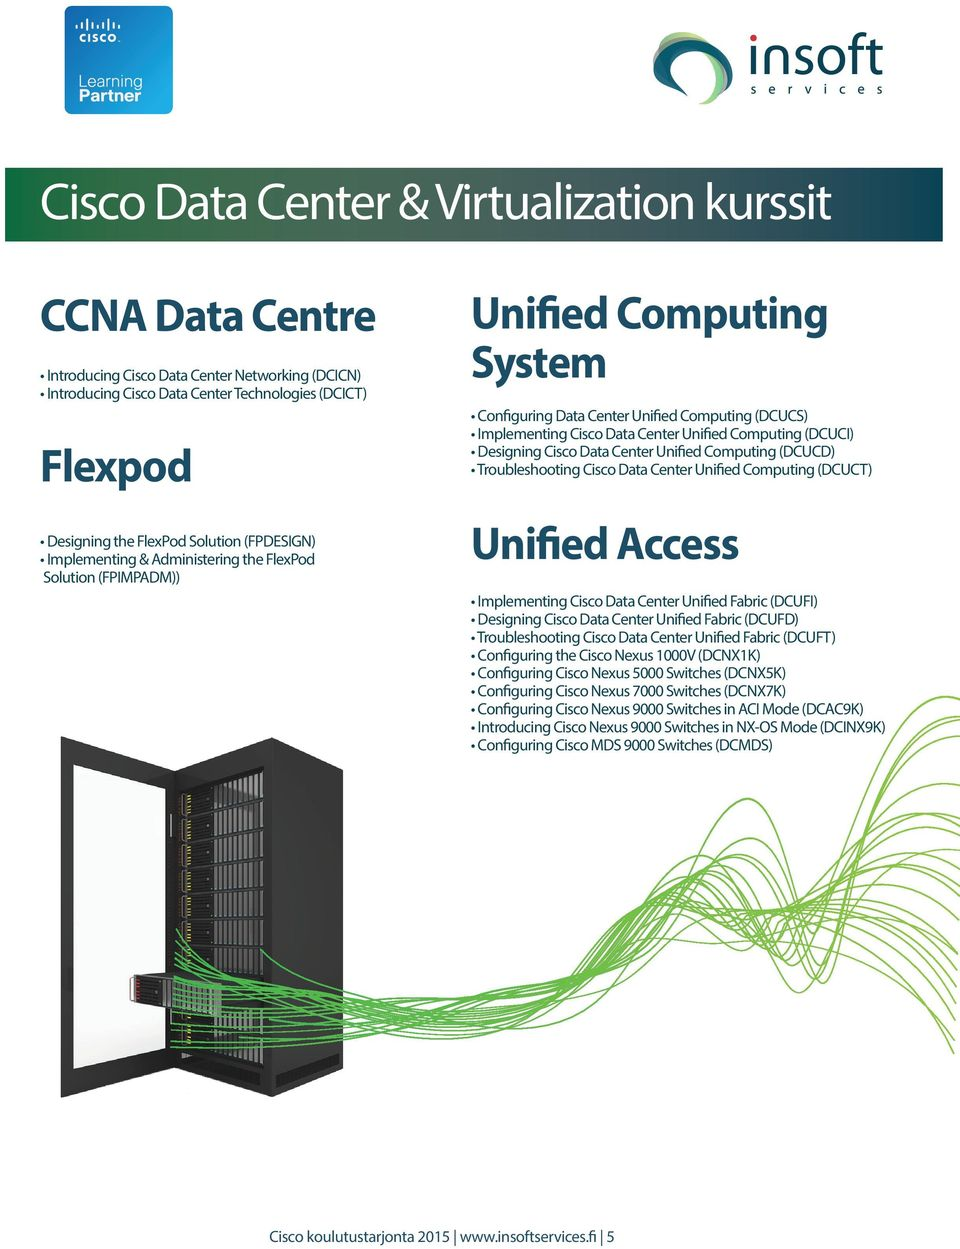 (DCUCI) Designing Cisco Data Center Unified Computing (DCUCD) Troubleshooting Cisco Data Center Unified Computing (DCUCT) Unified Access Implementing Cisco Data Center Unified Fabric (DCUFI)